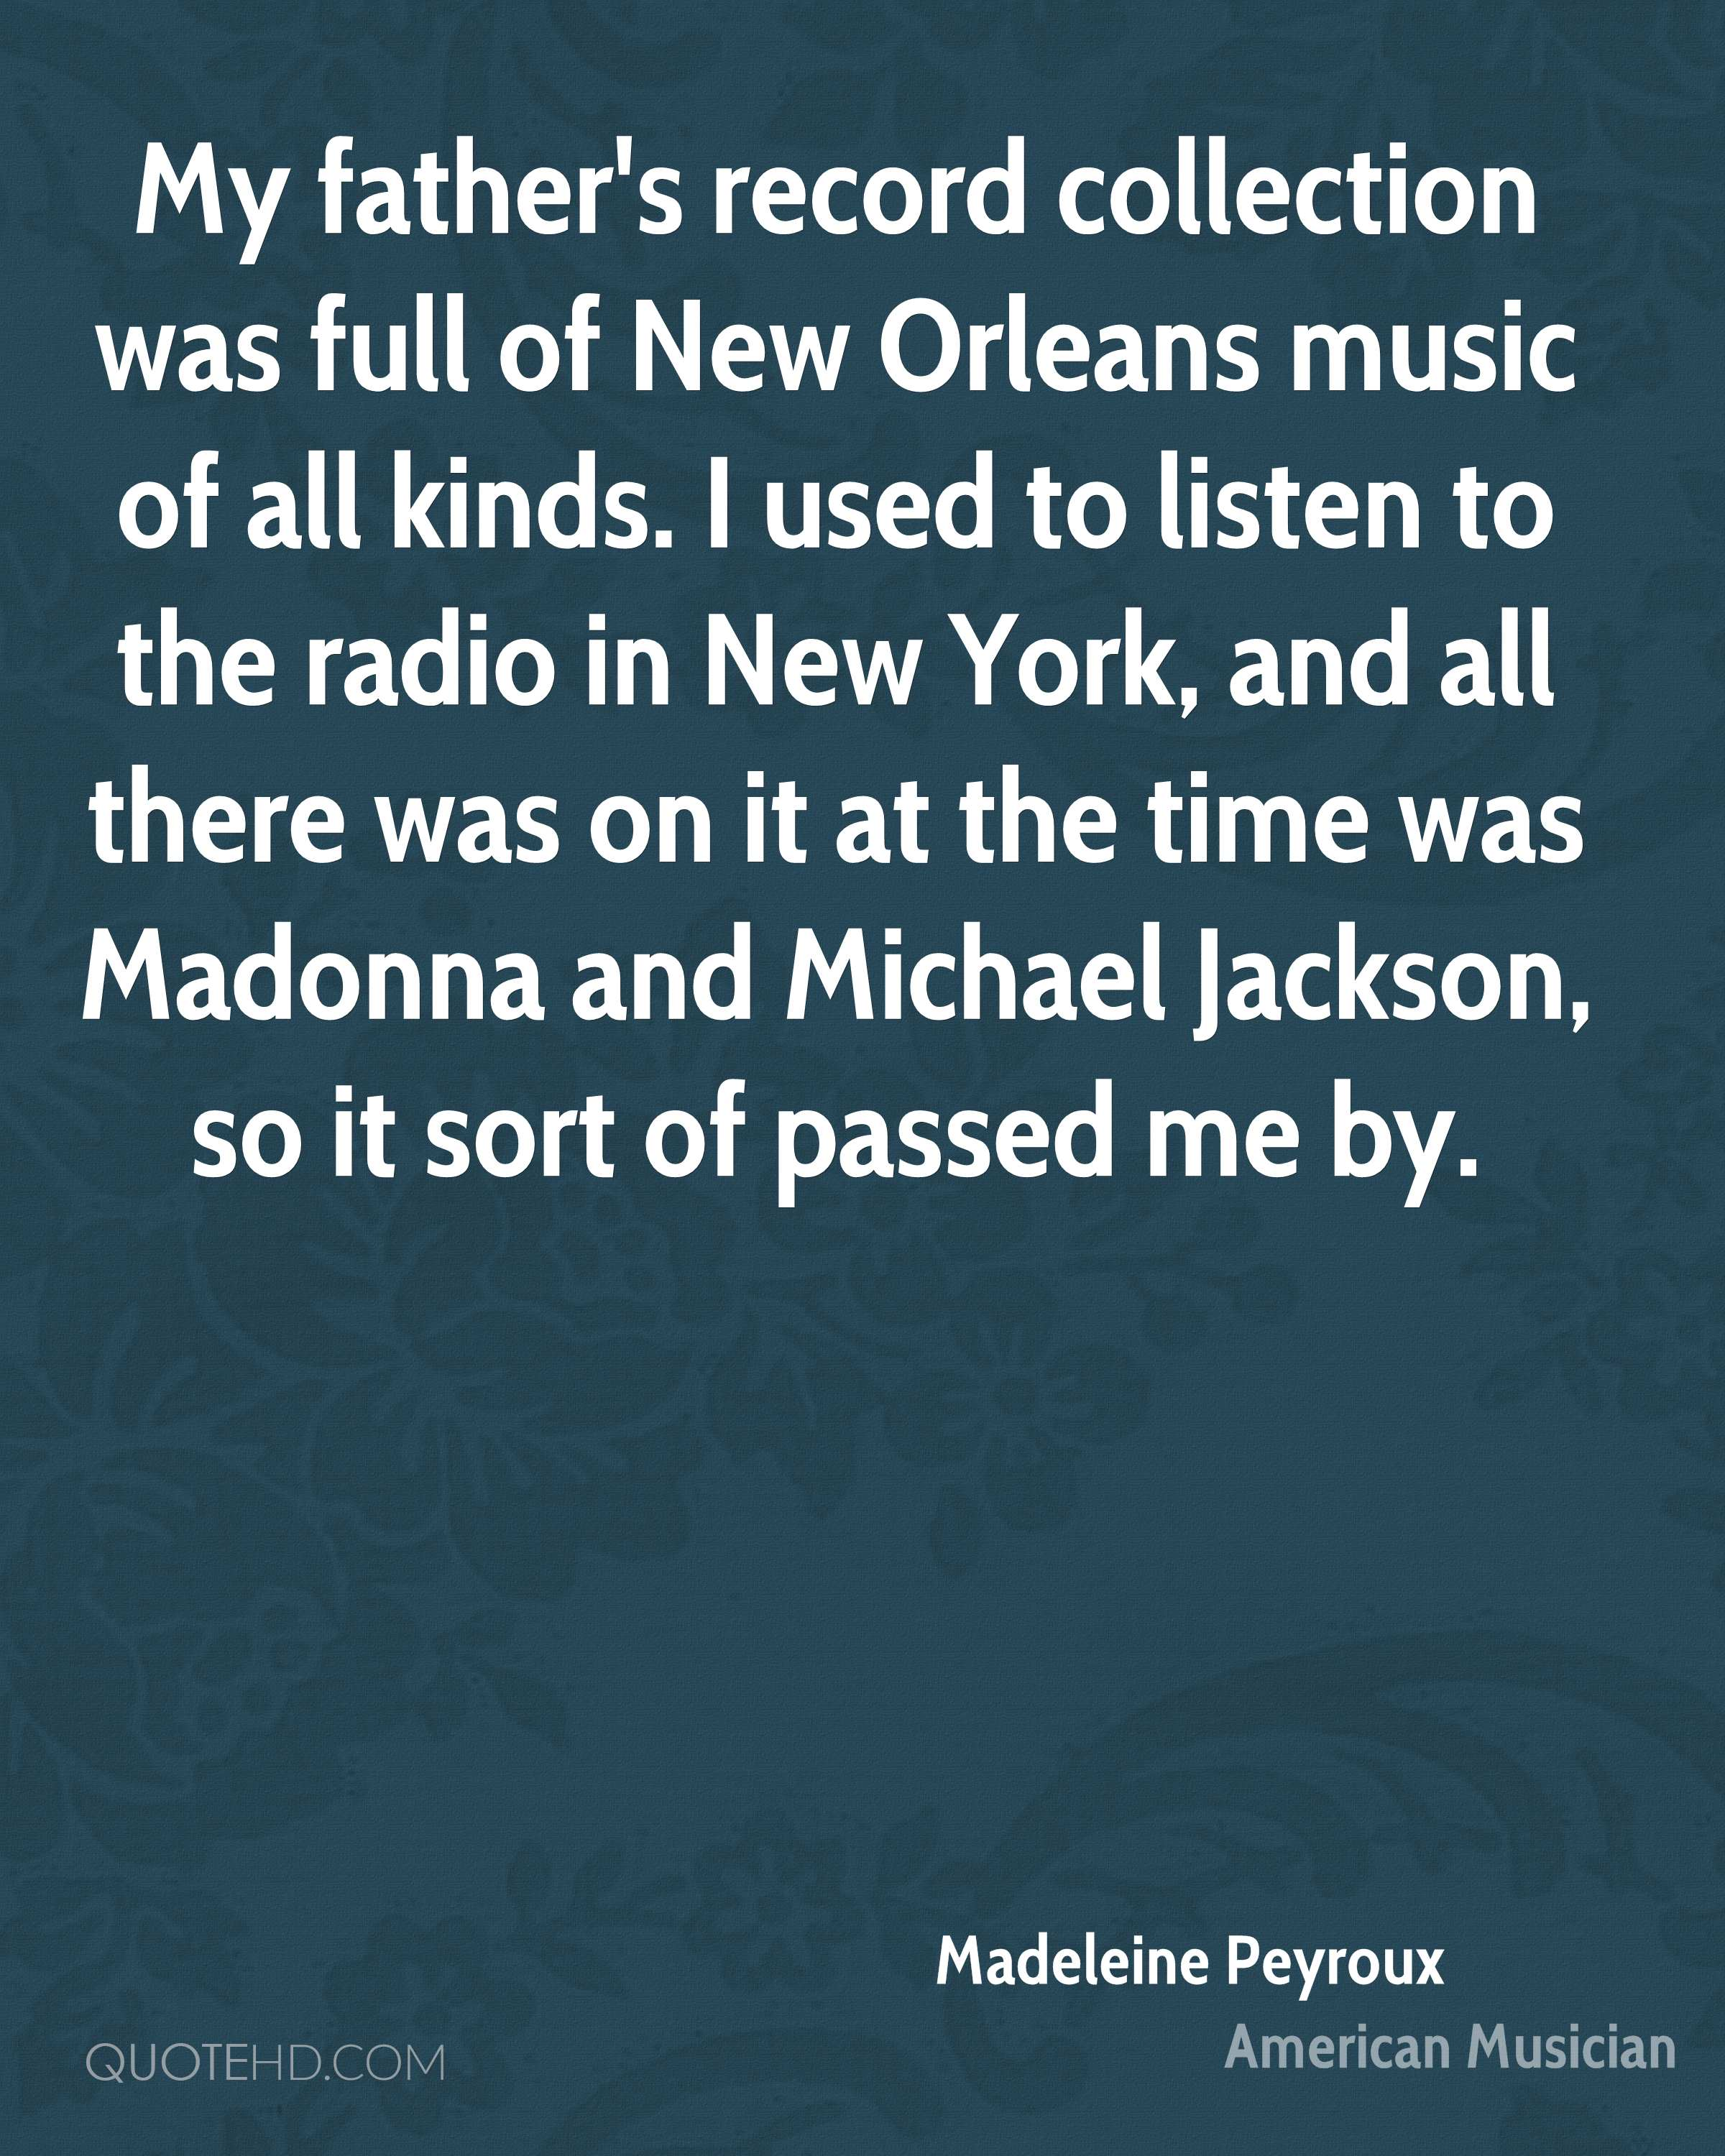 My father's record collection was full of New Orleans music of all kinds. I used to listen to the radio in New York, and all there was on it at the time was Madonna and Michael Jackson, so it sort of passed me by.